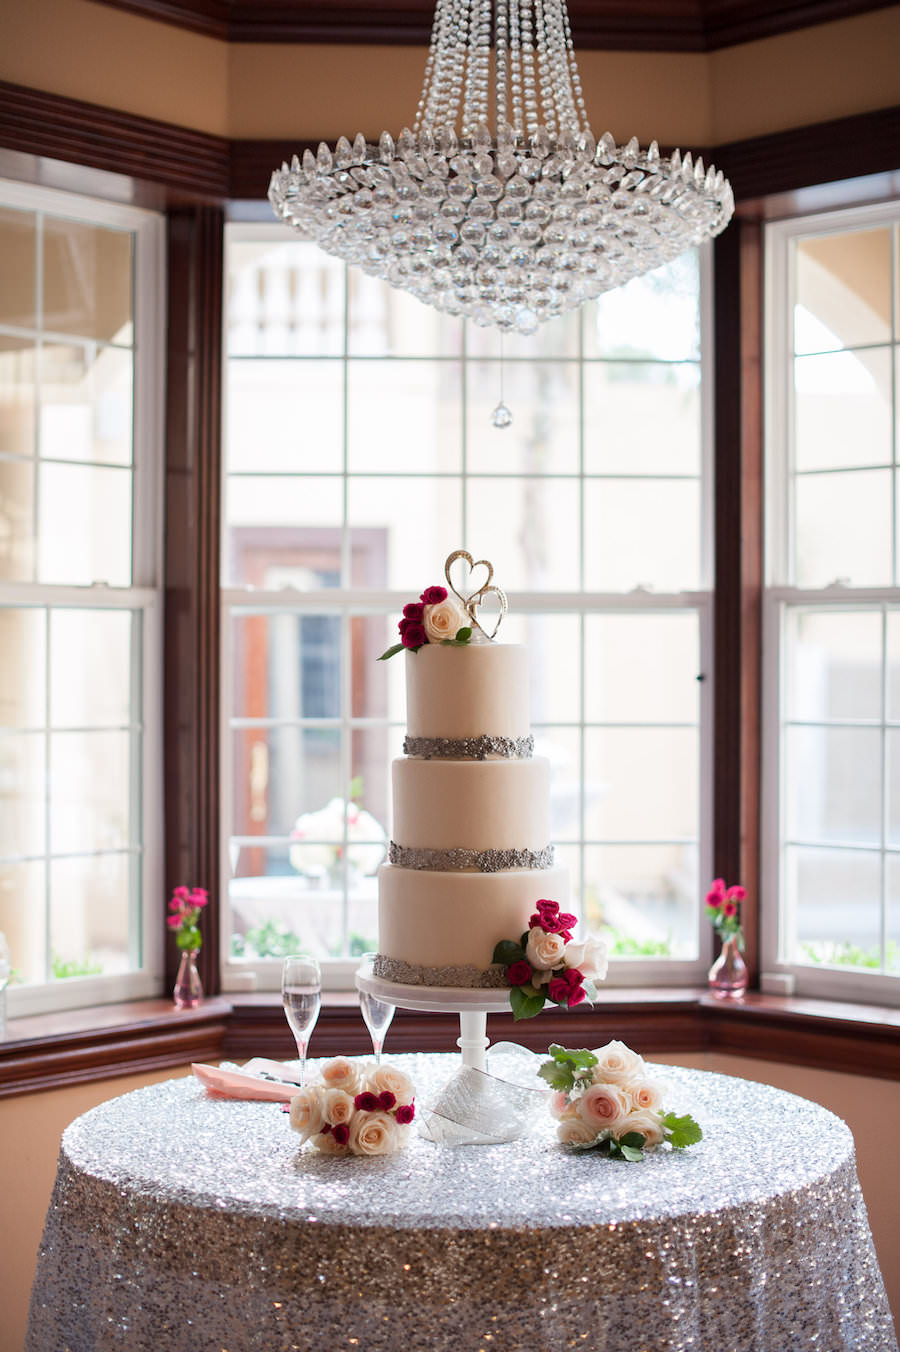 Three Tiered, White, Round Wedding Cake with Silver Accents and Ivory and Pink Flowers